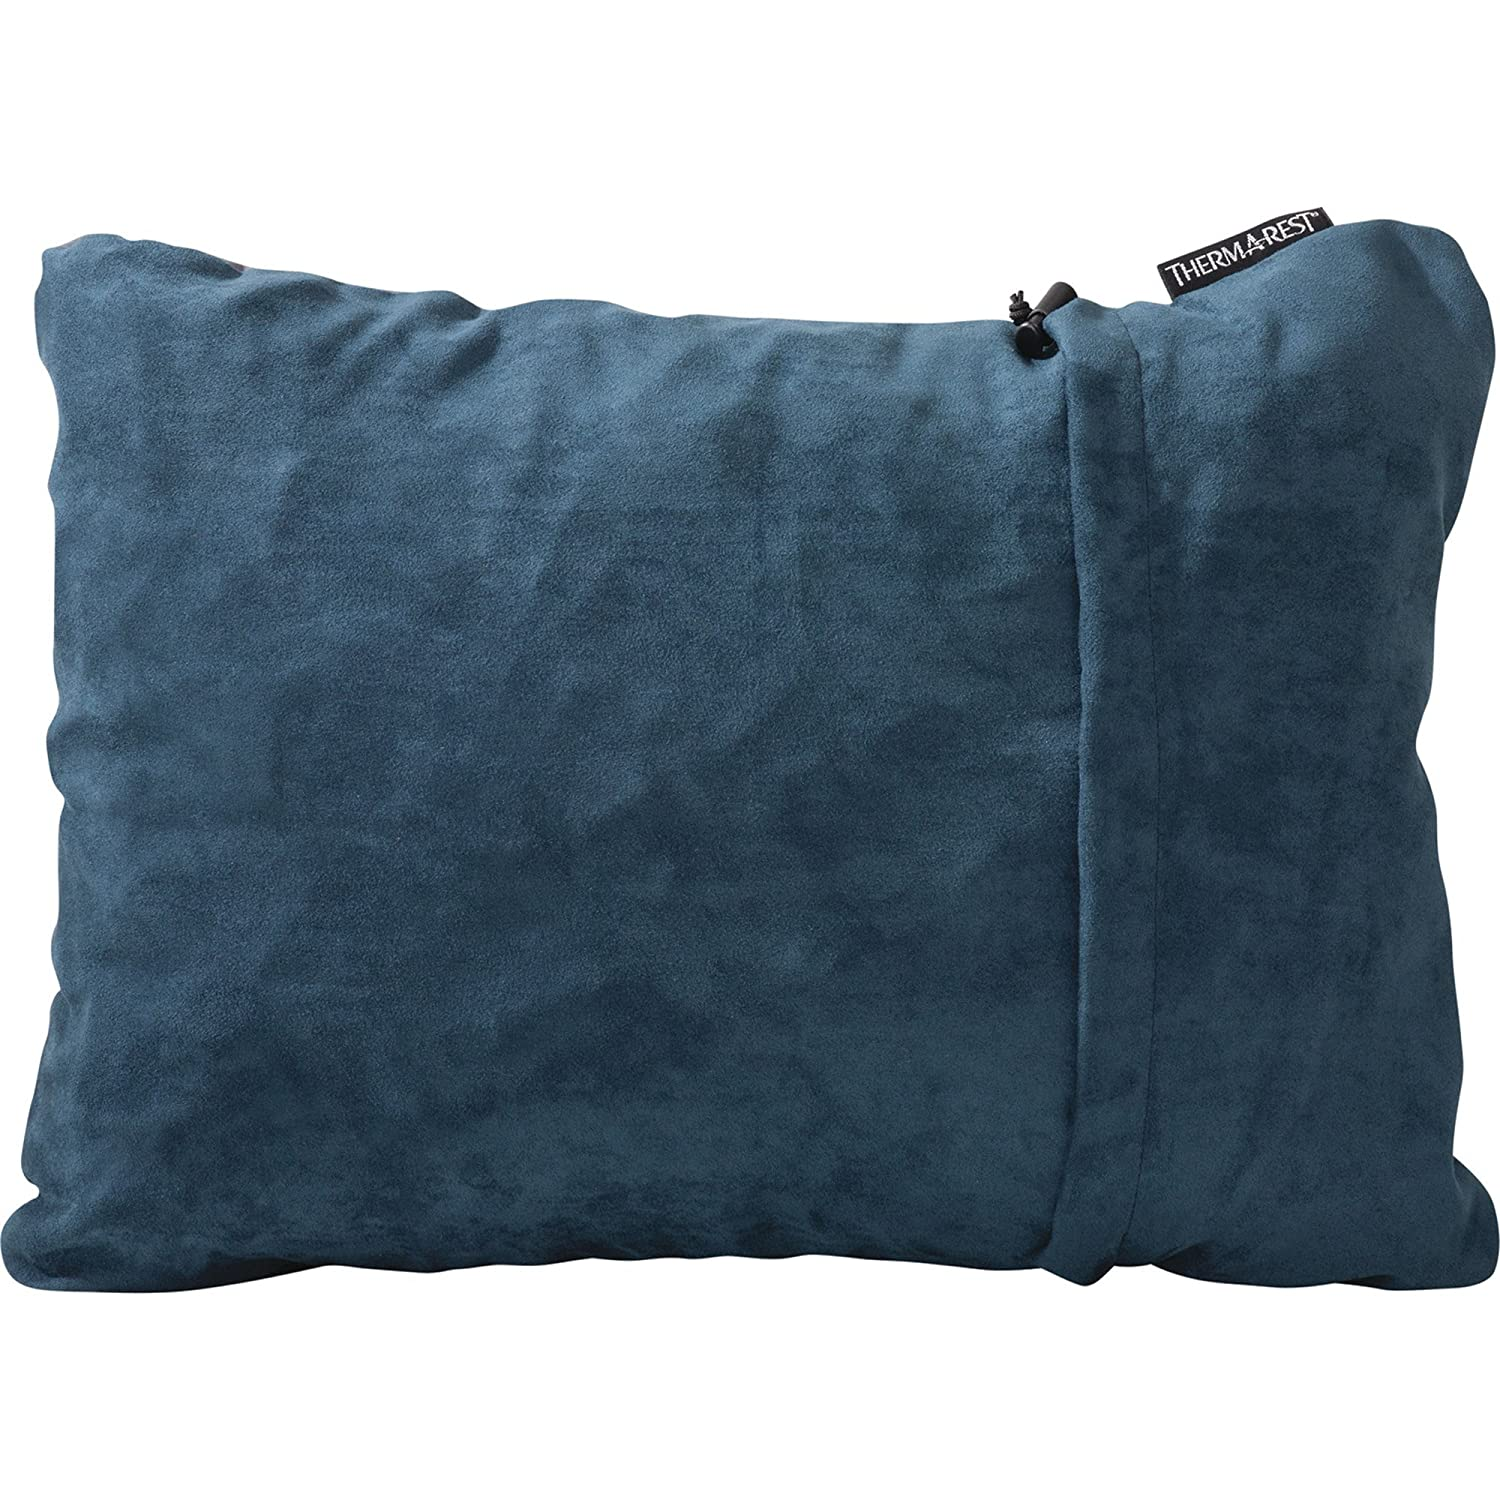 Therm-a-Rest Compressible Travel Pillow for Camping Backpacking Airplanes and Road Trips